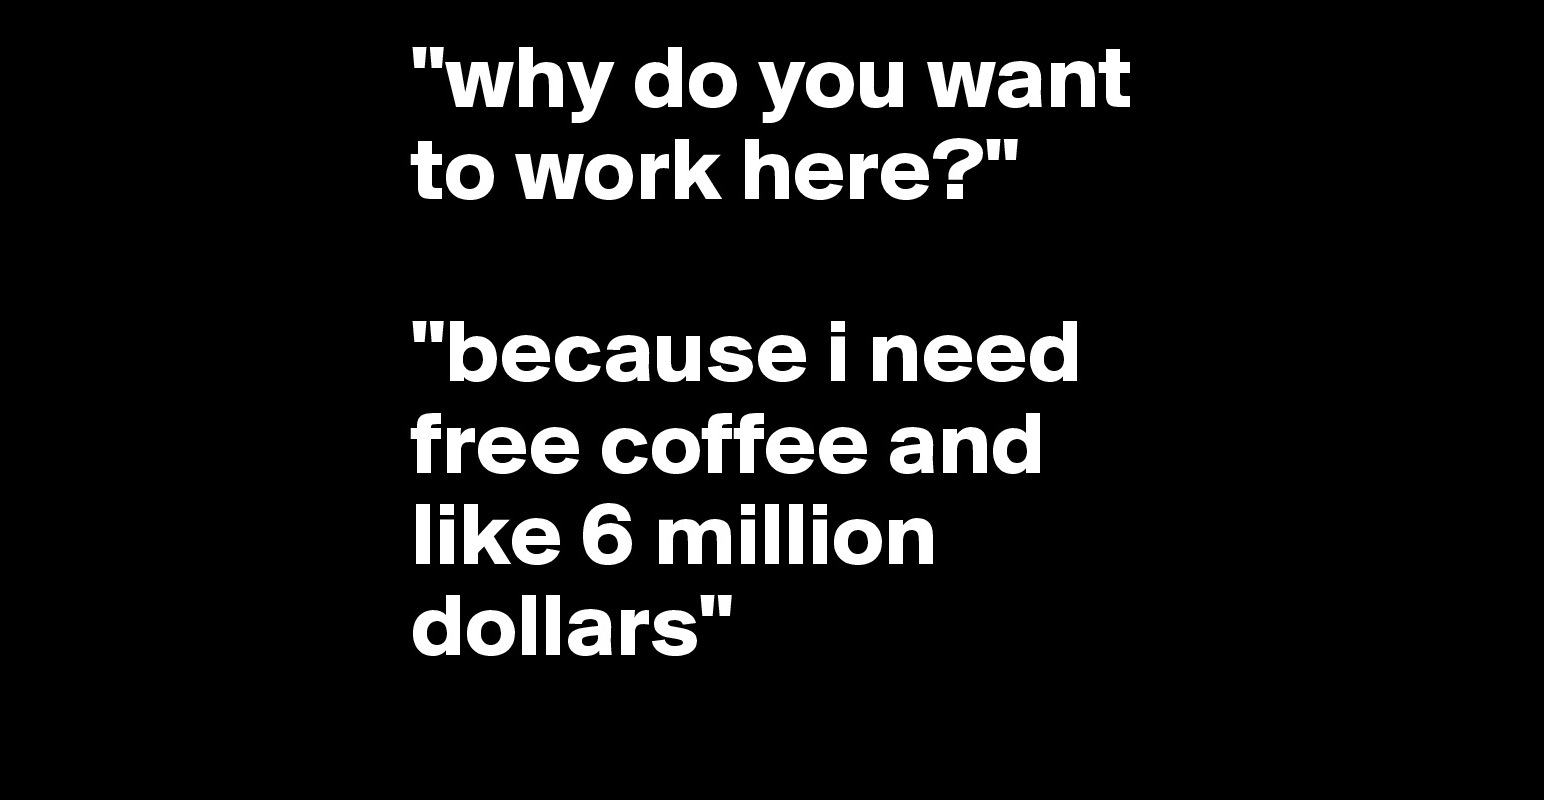 why do you want to work here because i need coffee and why do you want to work here because i need coffee and like 6 million dollars post by cmdz on boldomatic